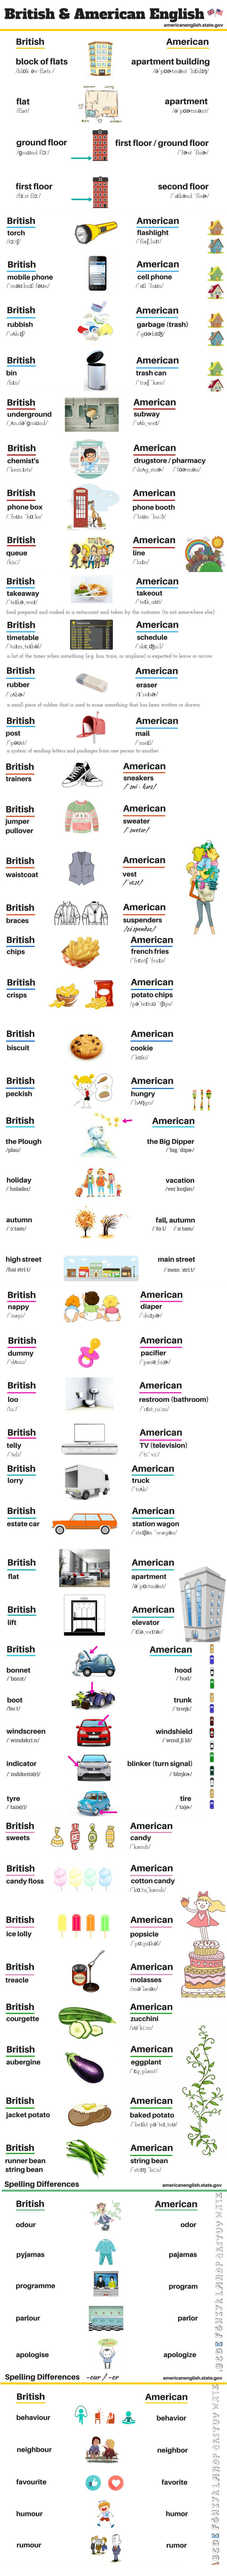 Check this infographic see if your knowledge is right or not!